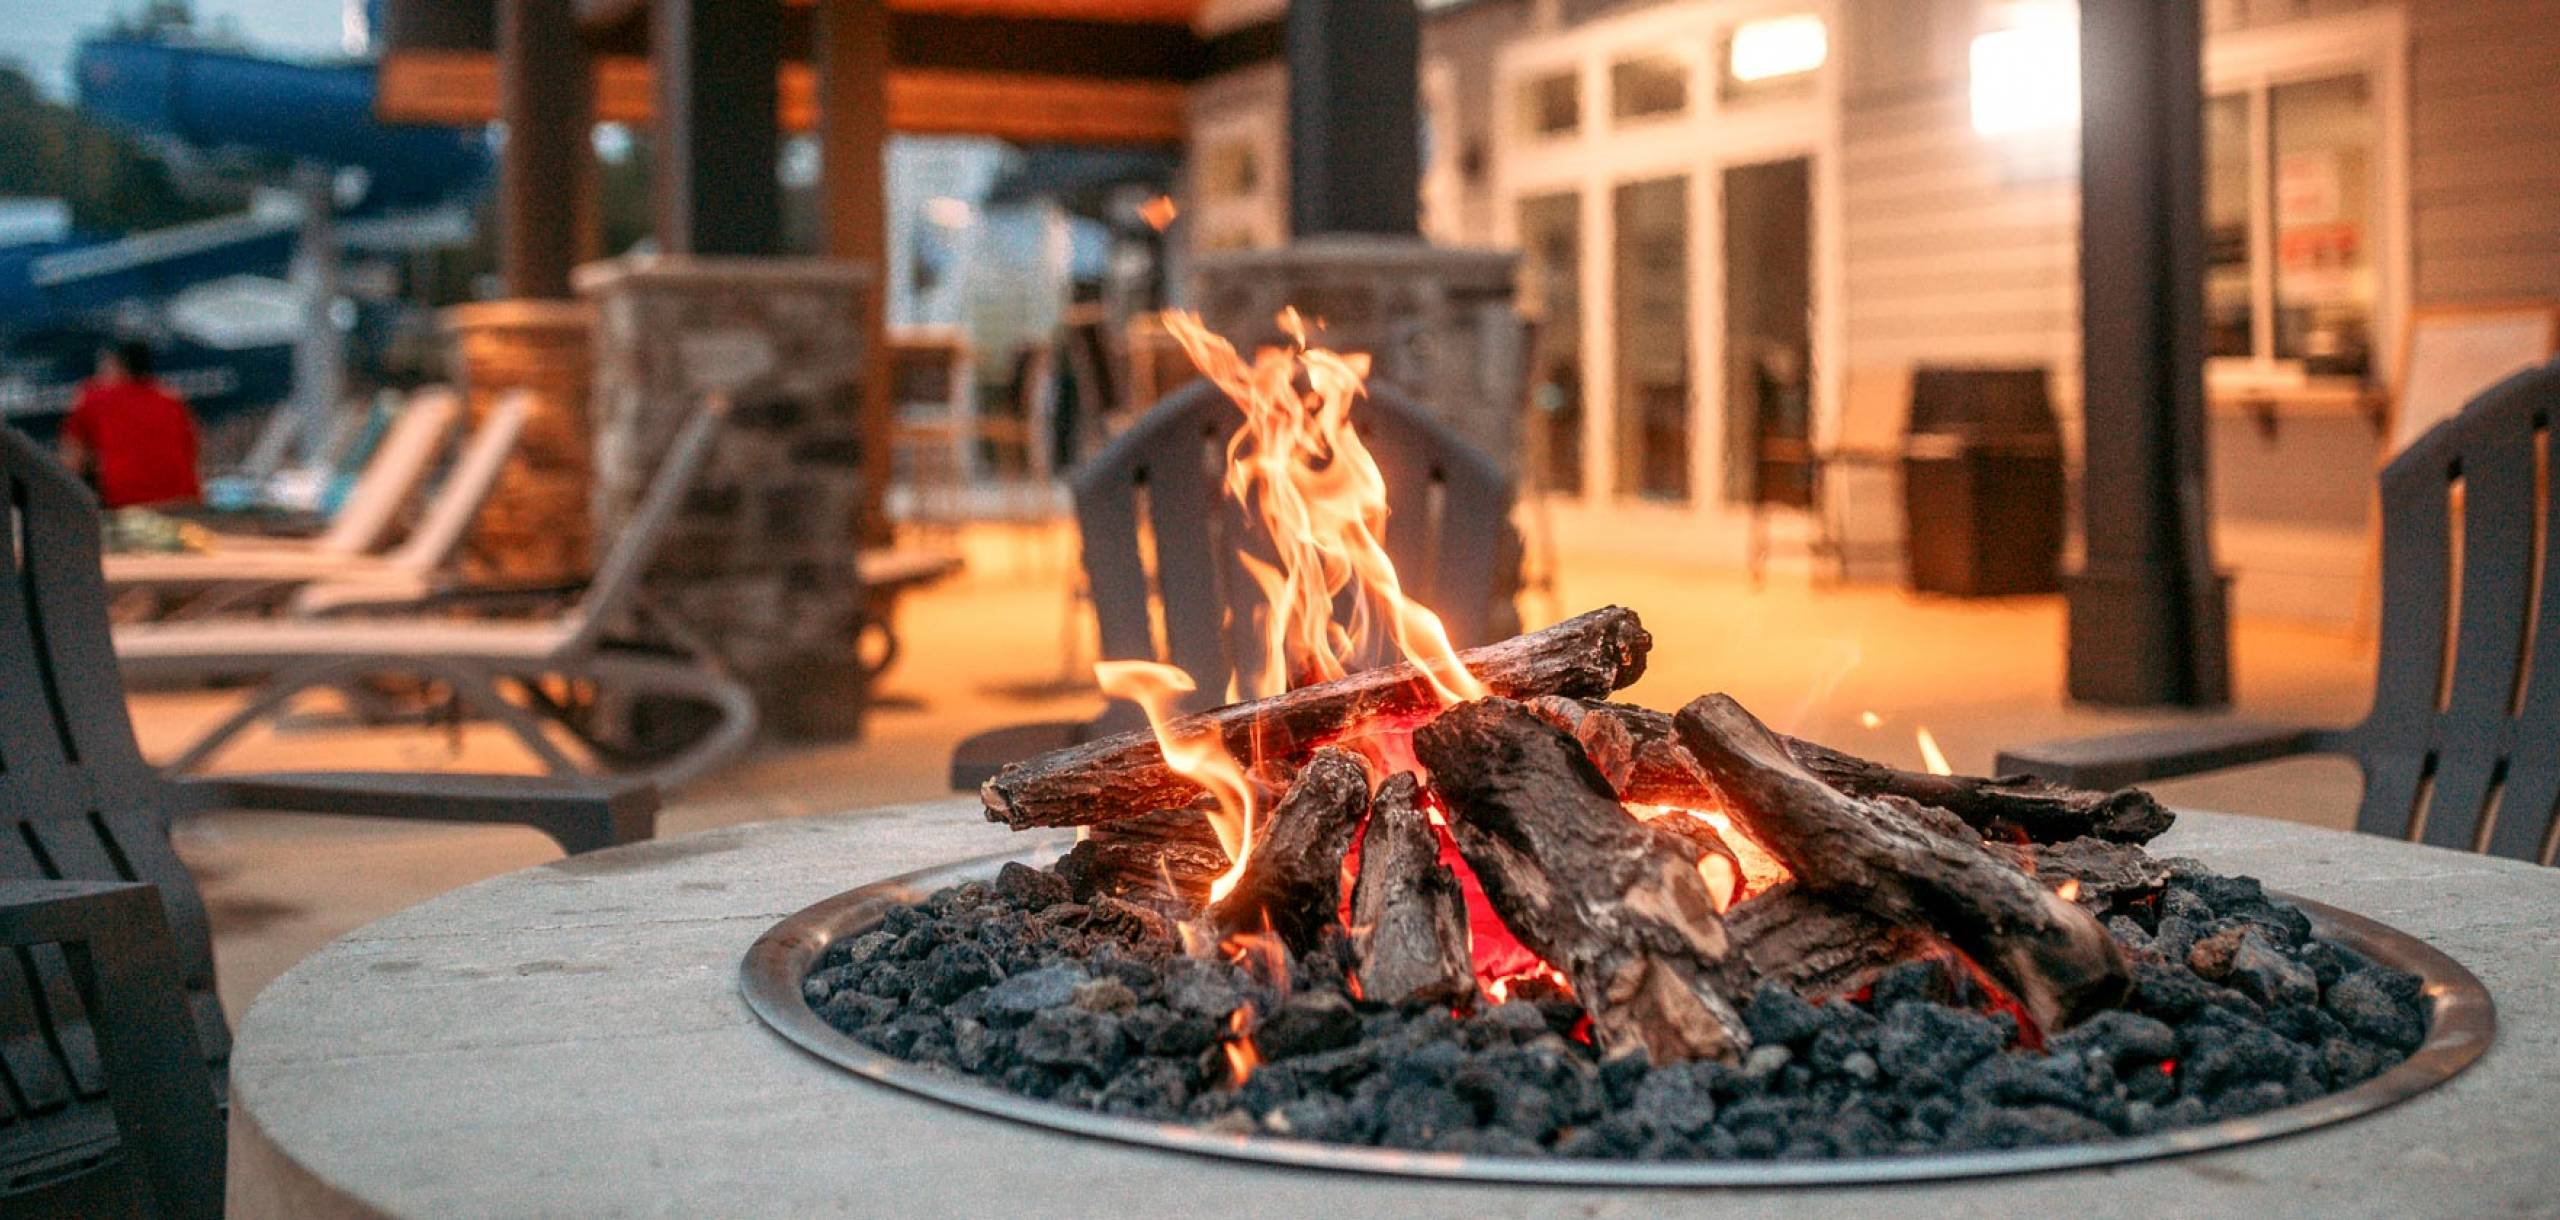 Pigeon Forge RV Resort Firepit with TVs and Lounge Area